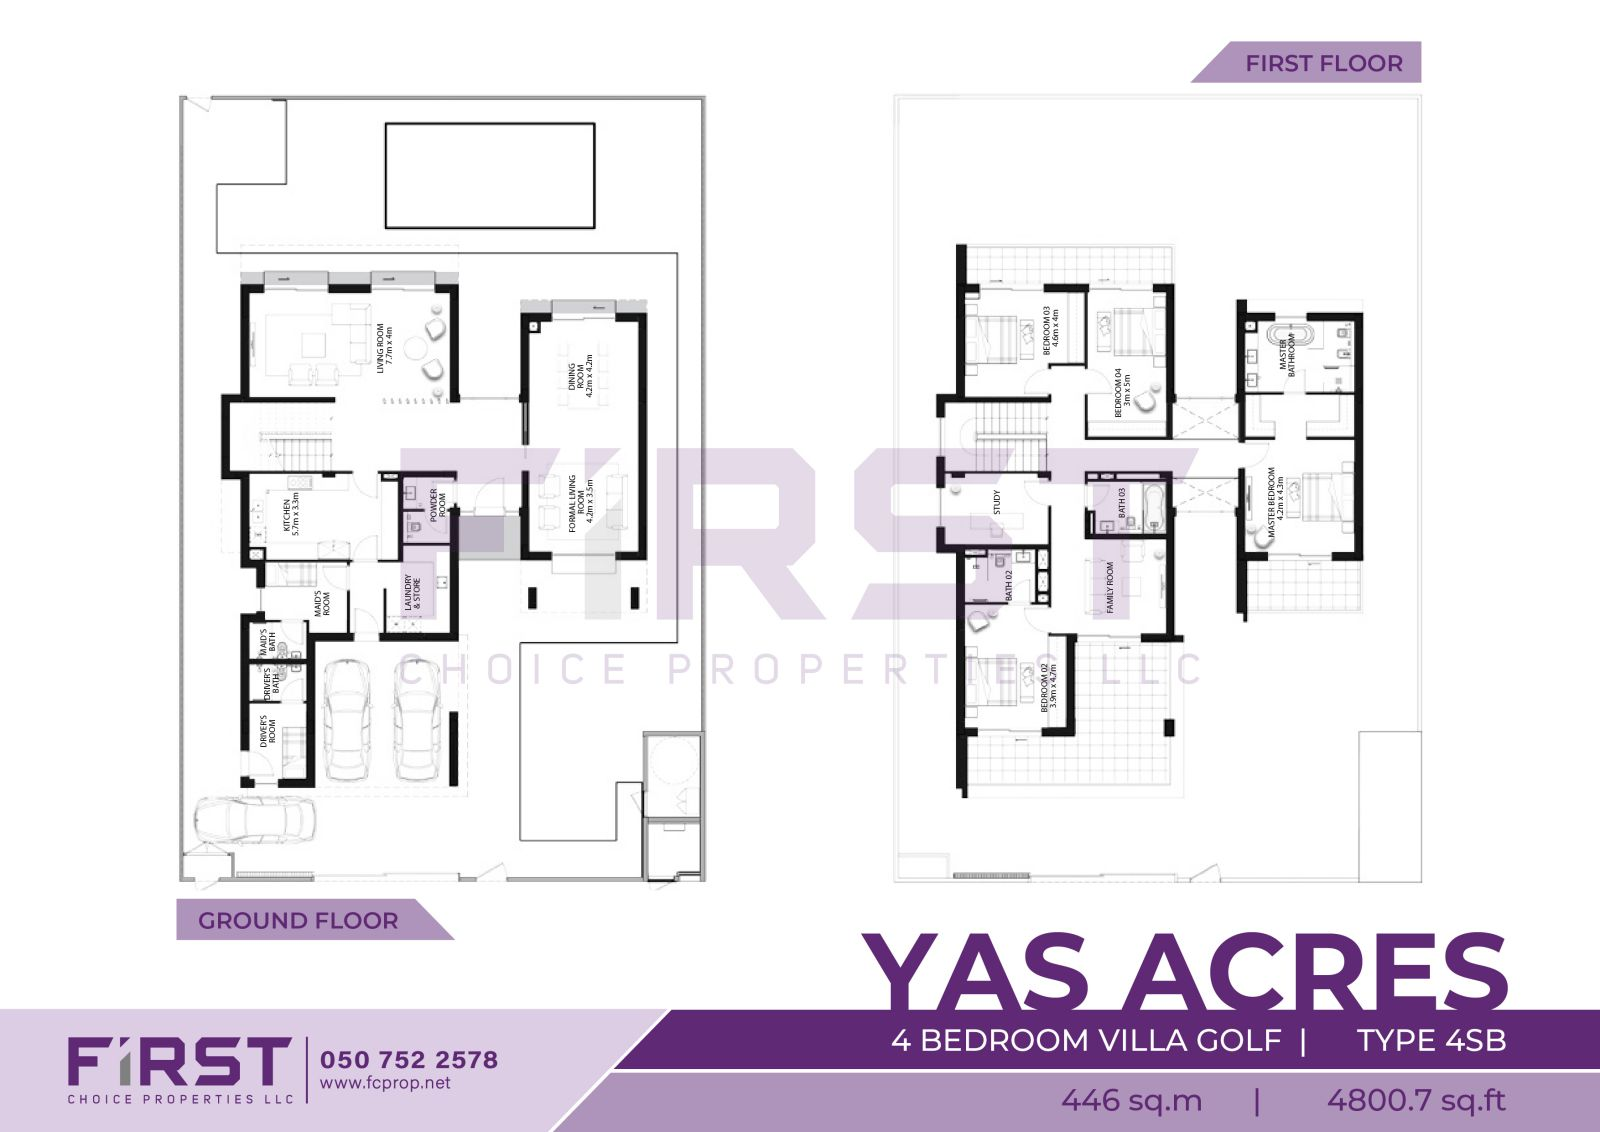 Floor Plan of 4 Bedroom Villa Golf Type 4SB in Yas Acres Yas Island Abu Dhabi UAE 446 sq.m 4800.7 sq.ft.jpg